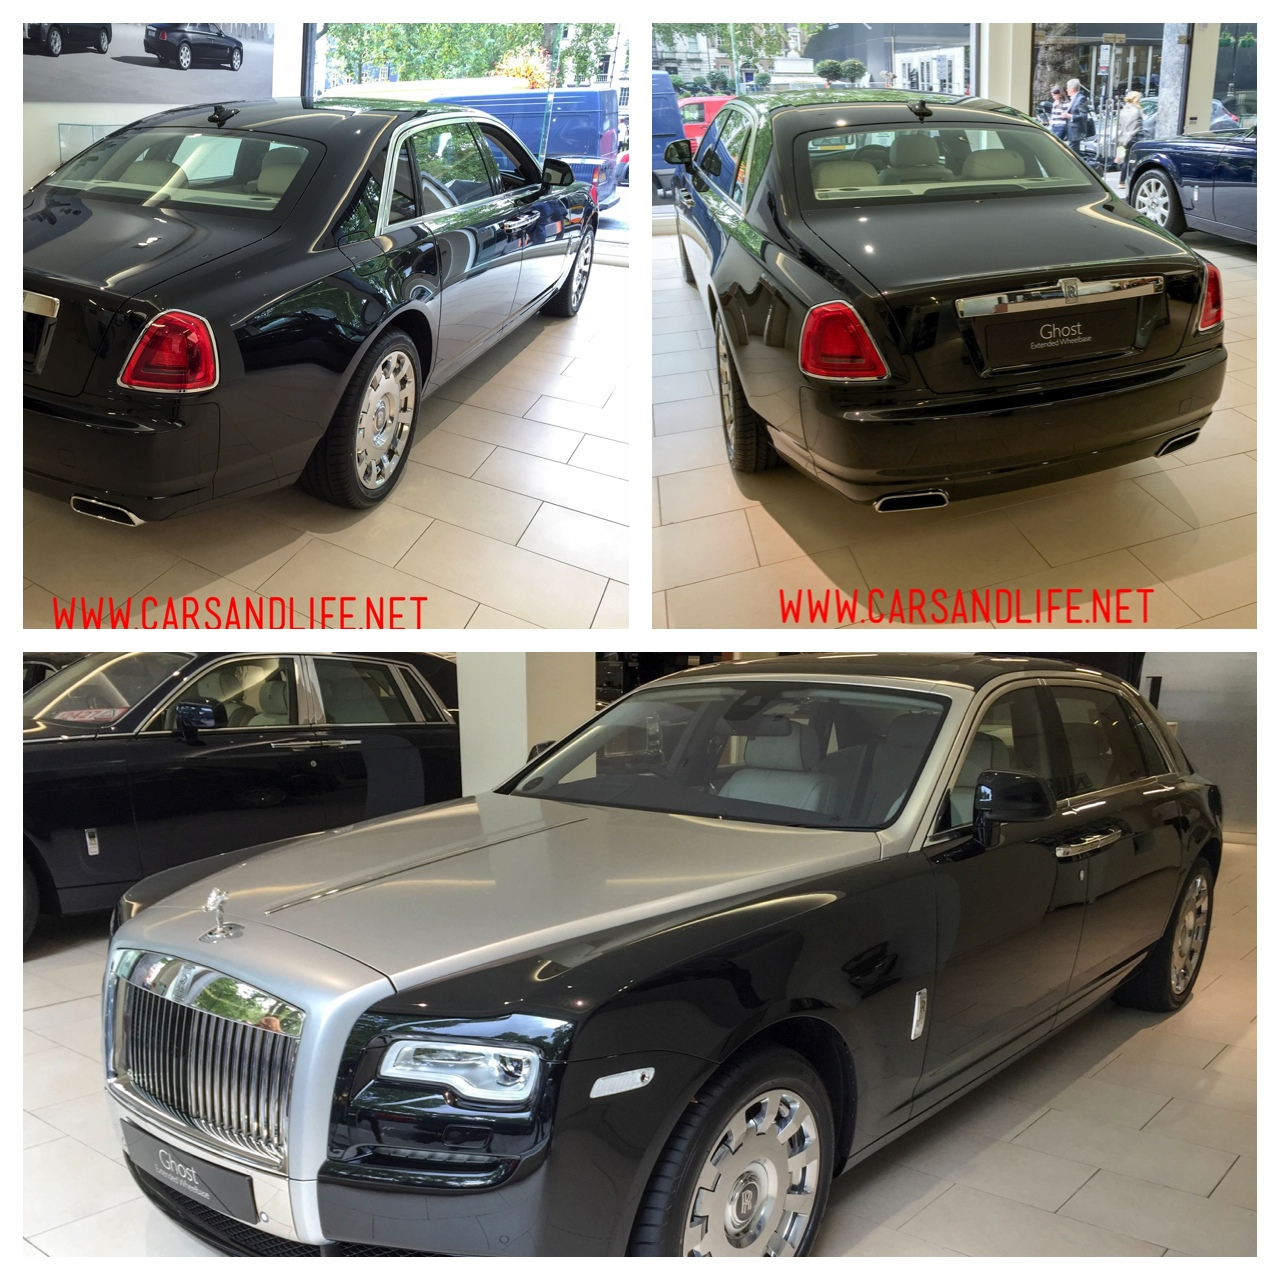 Photos of Rolls-Royce Ghost Series II, HR Owen London